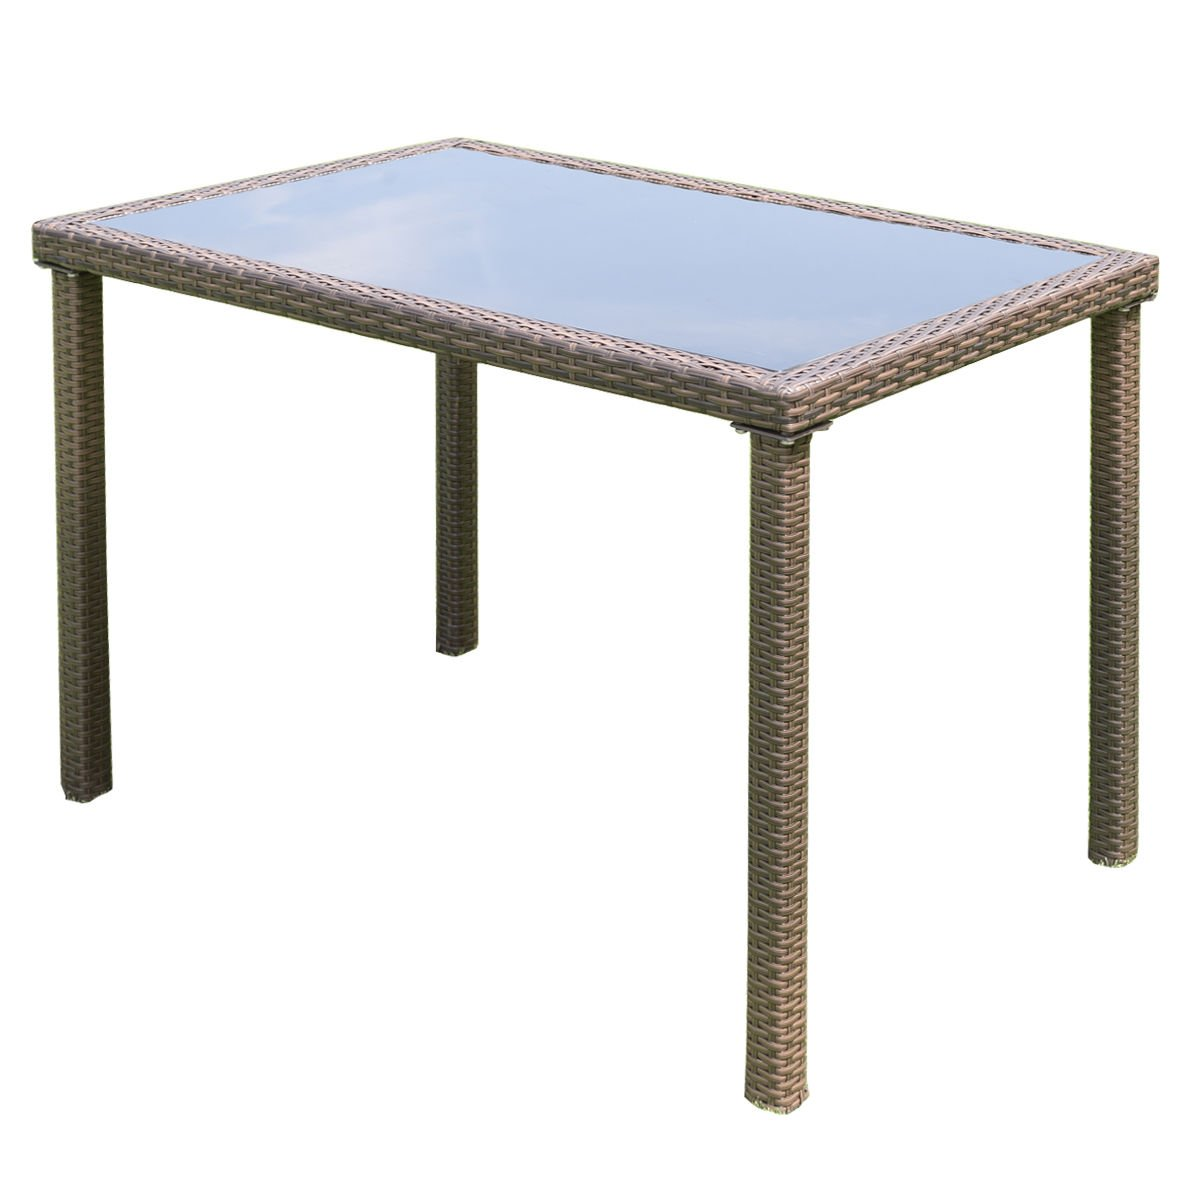 TANGKULA Wicker Table Outdoor Patio Balcony Pool Garden Tempered Glass Top and Metal Frame Accent Side Table Patio Dining Table Coffee Tea Table (rectangle) by TANGKULA